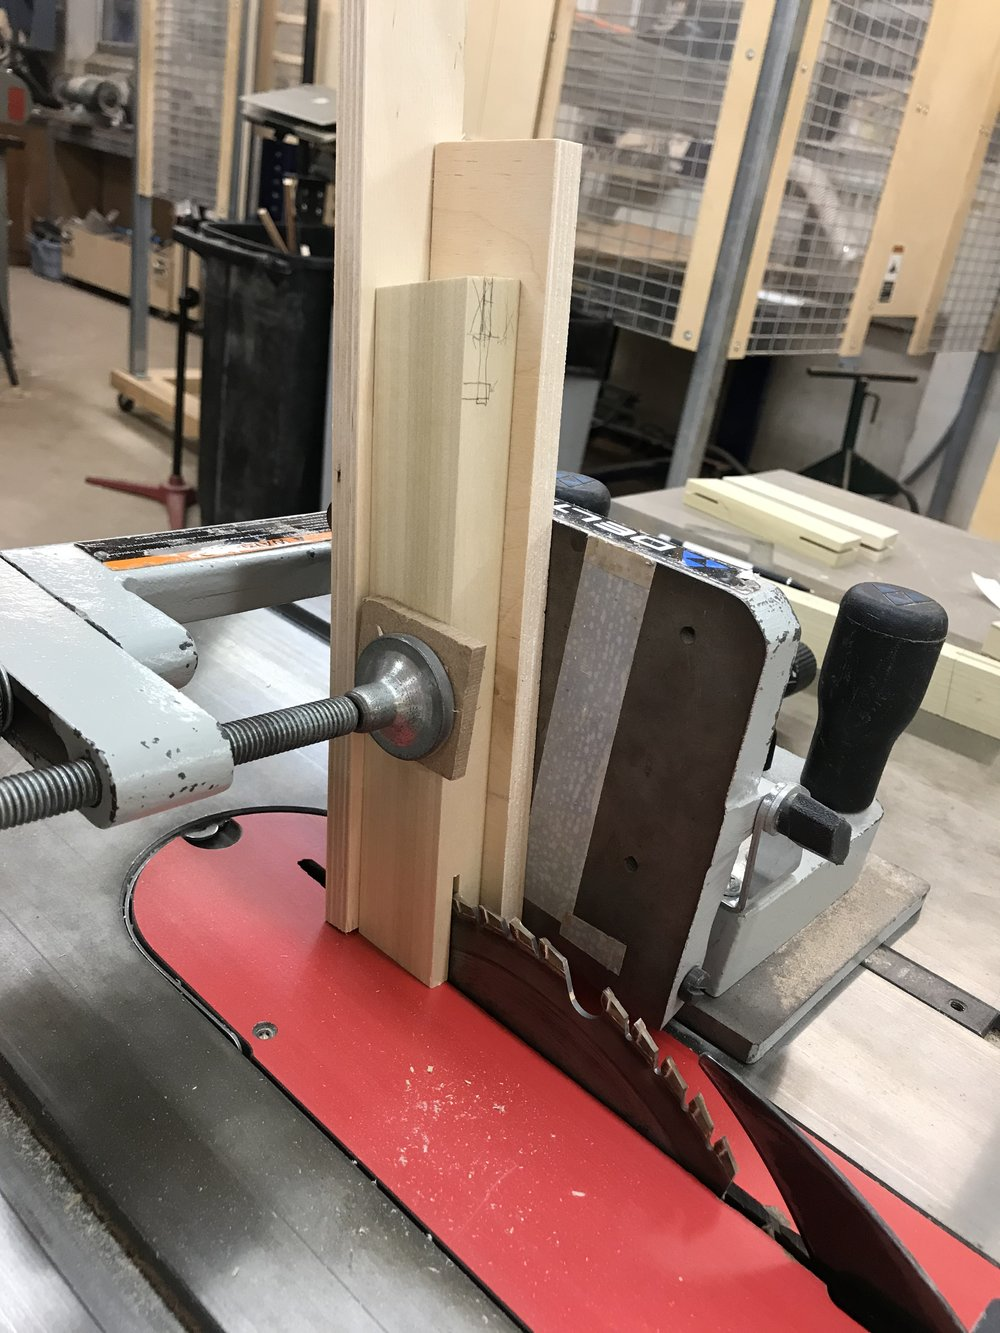 Using the tenon jig to cut leg stretchers